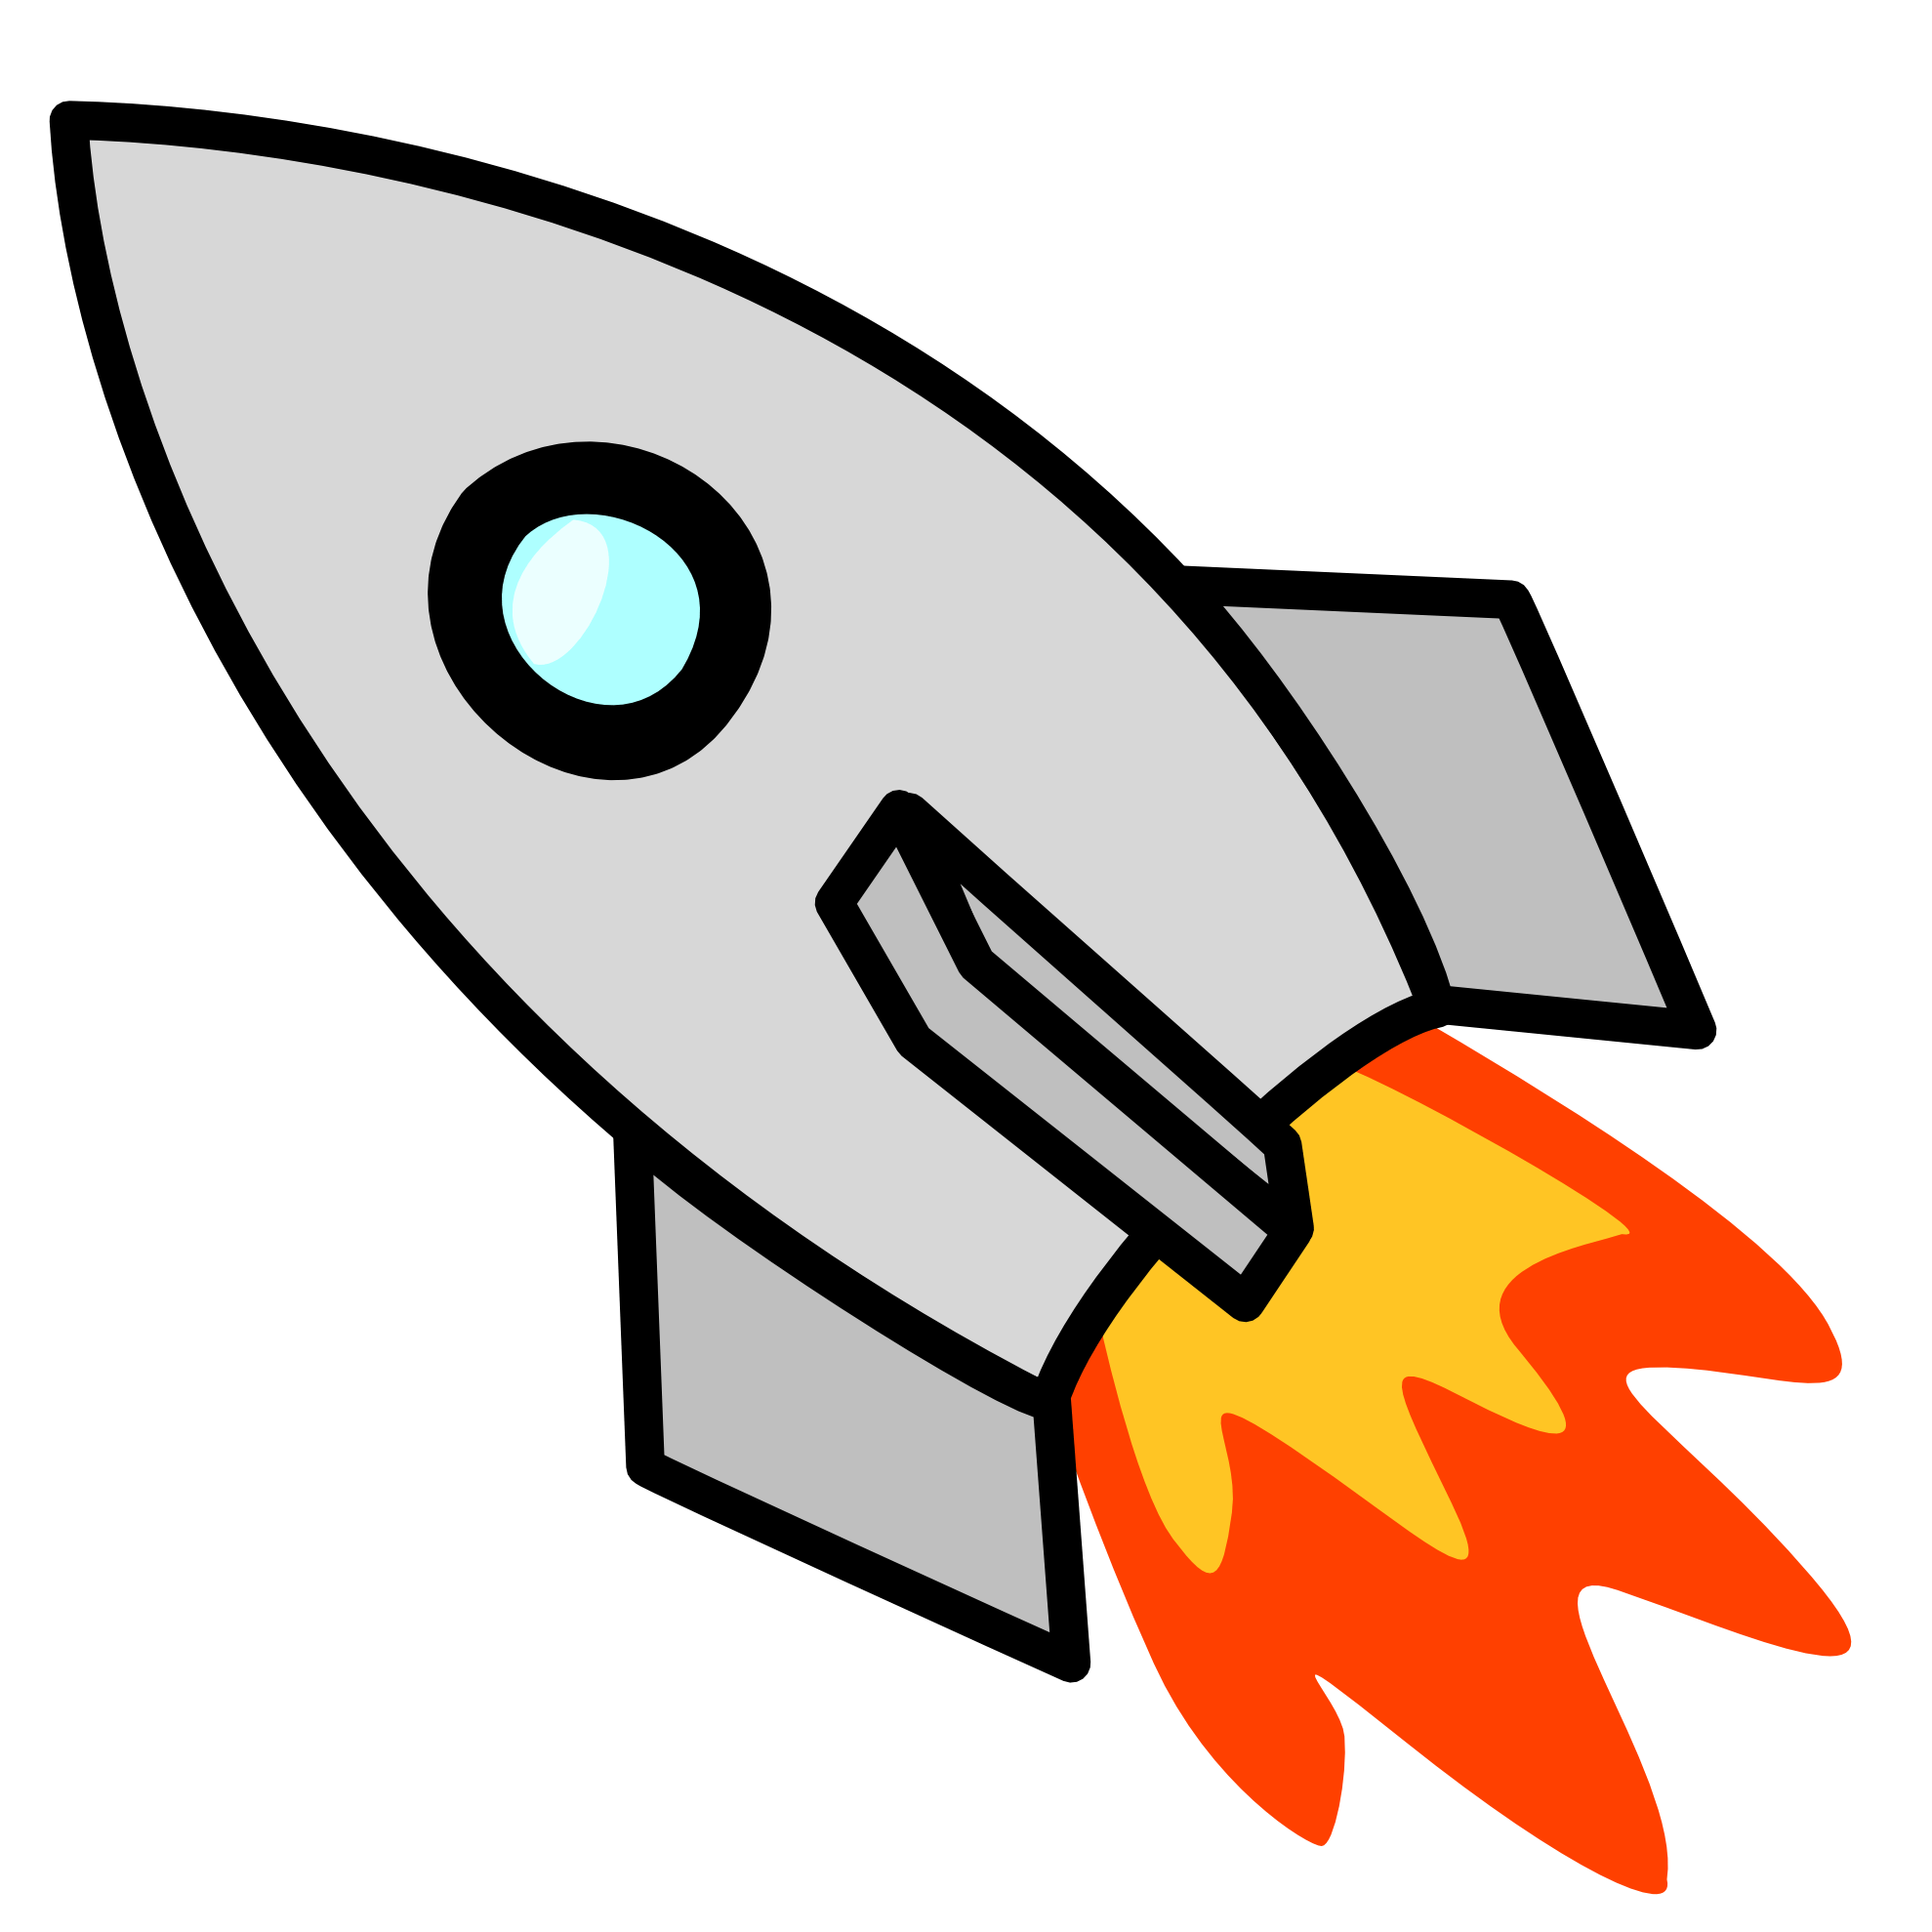 Future clipart astronaut spaceship. Free orange cliparts download